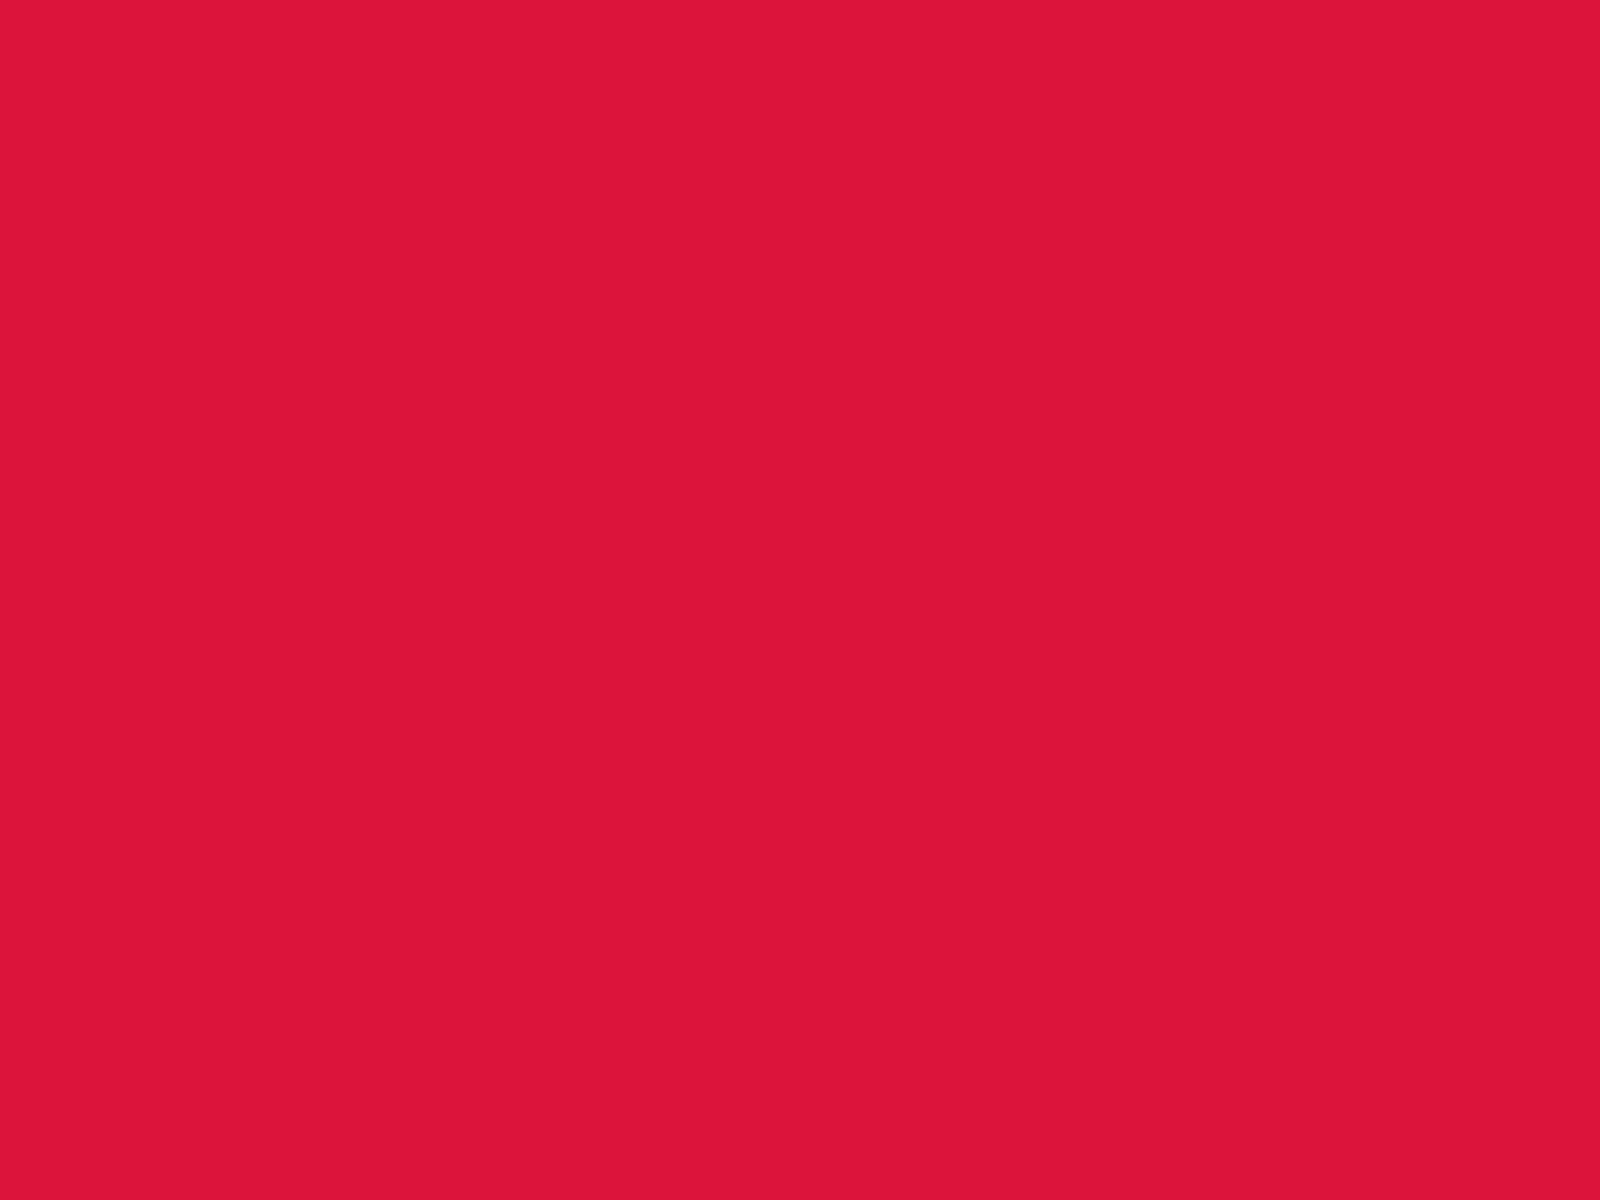 1600x1200 Crimson Solid Color Background